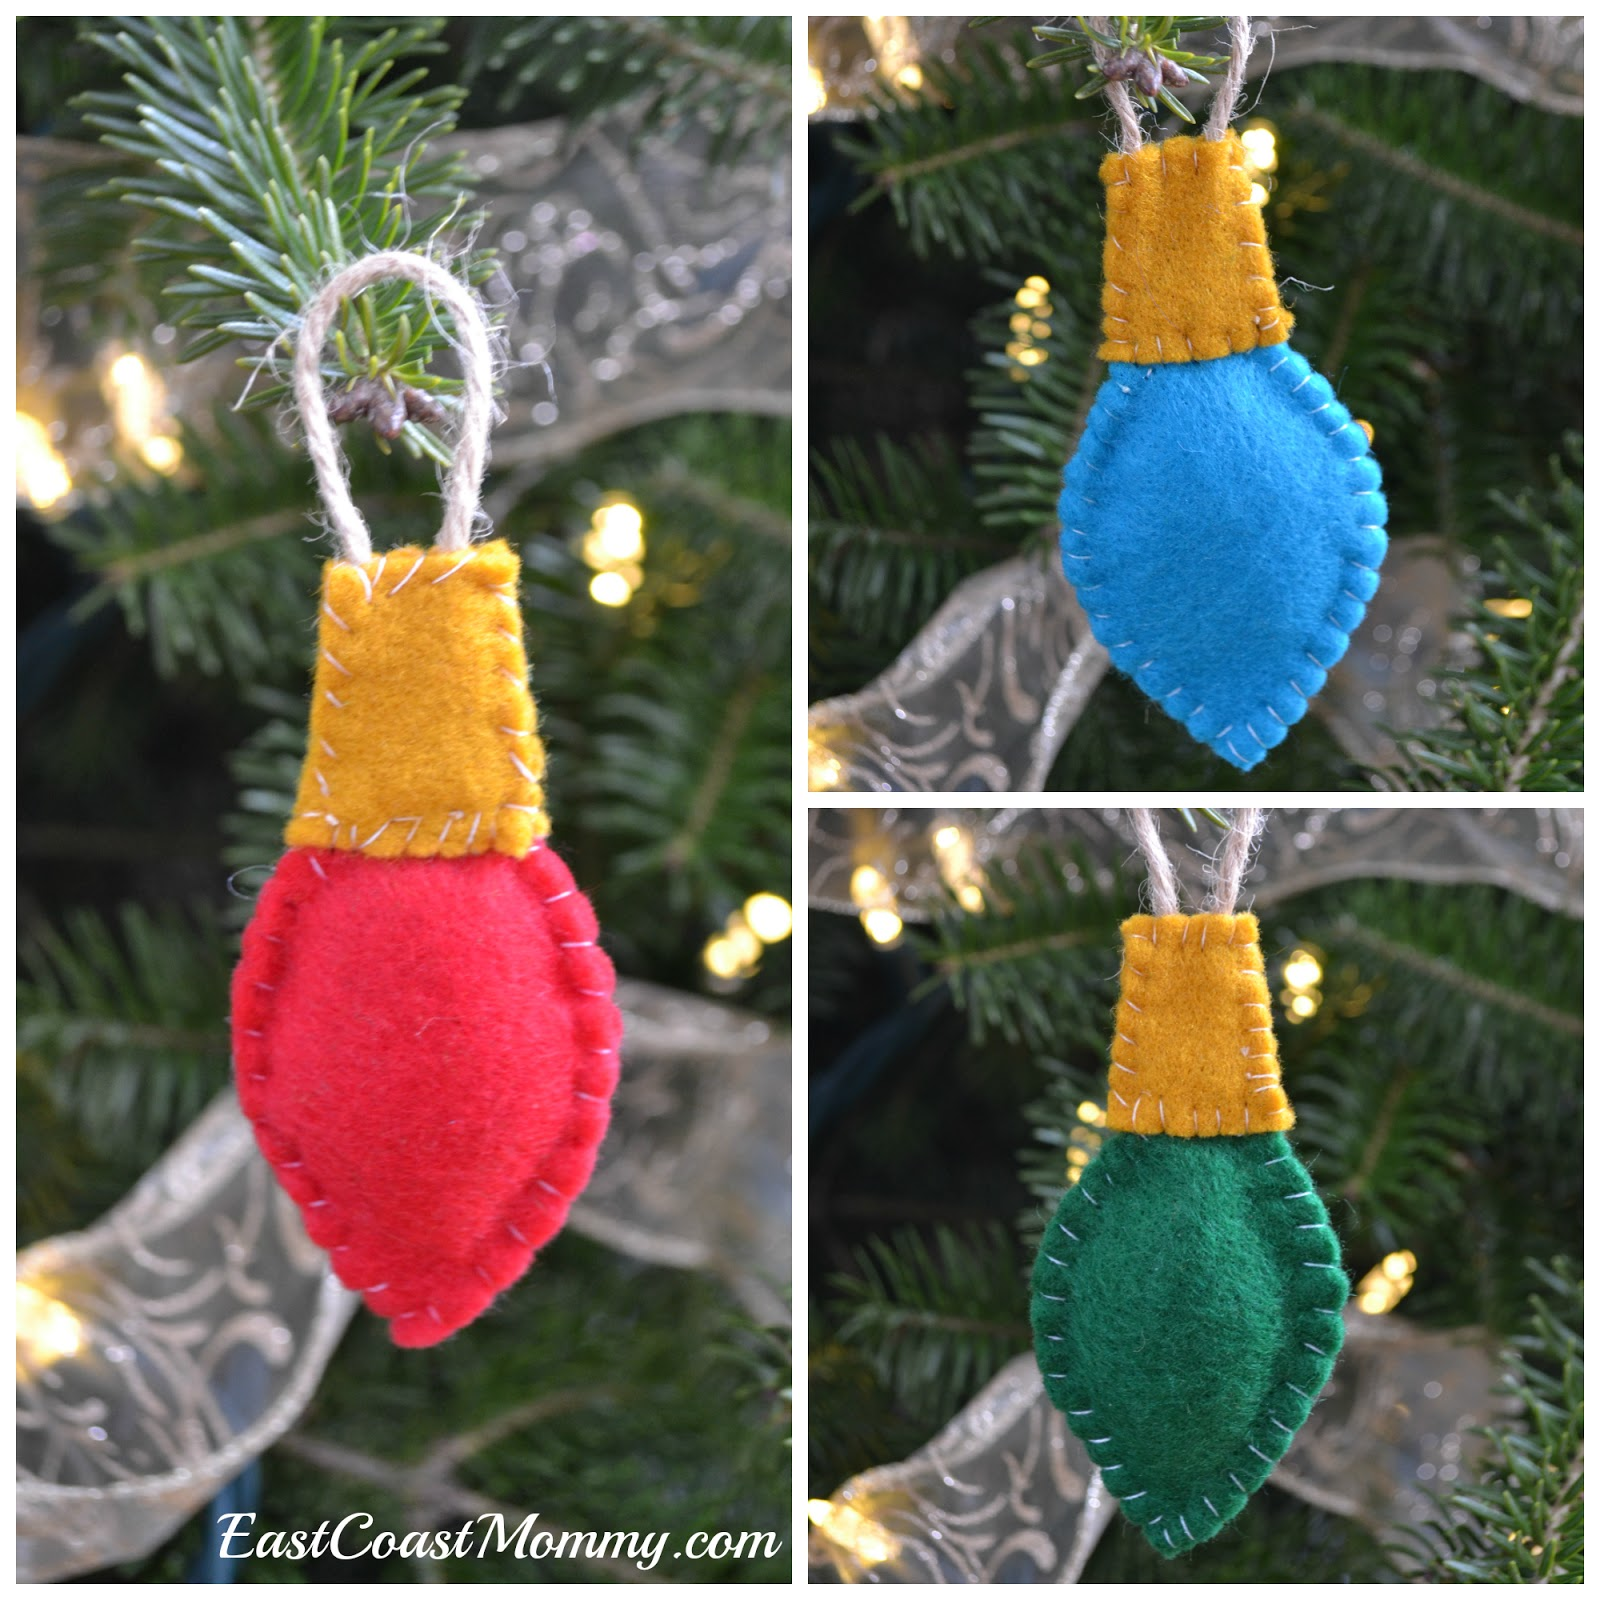 Christmas Light Bulb Decorations: East Coast Mommy: Felt Lightbulb Ornaments